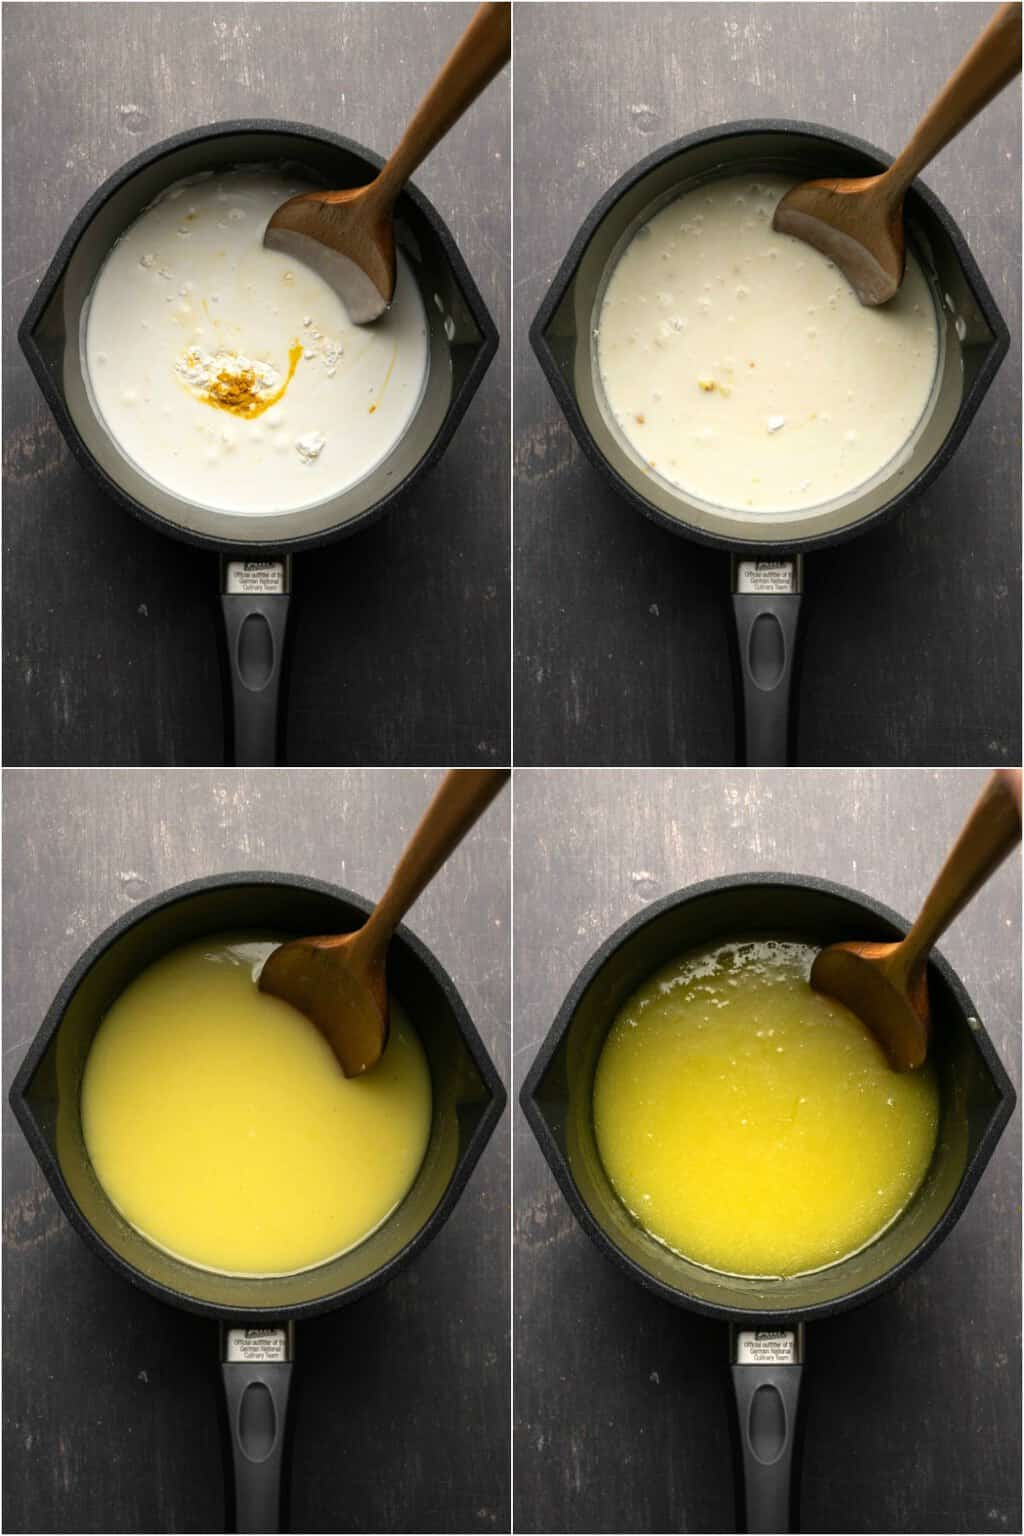 Step by step process photo collage of making vegan lemon curd.